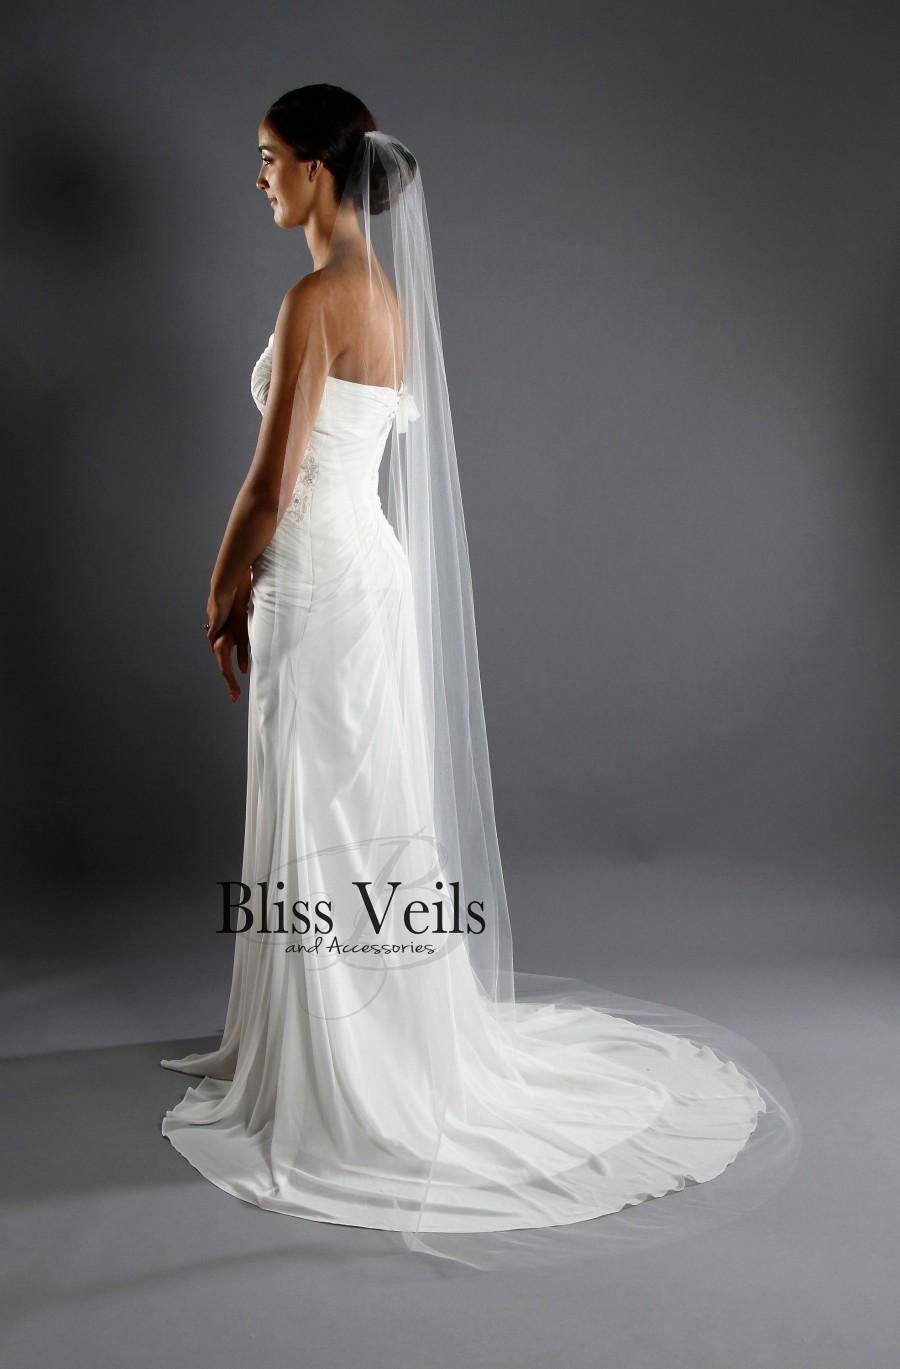 Свадьба - Thin Narrow Veil - Sheer Veil - Slim Veil - One Tier - Raw Edge - Chapel Length - Available in 10 Sizes and 11 Colors - Fast Shipping